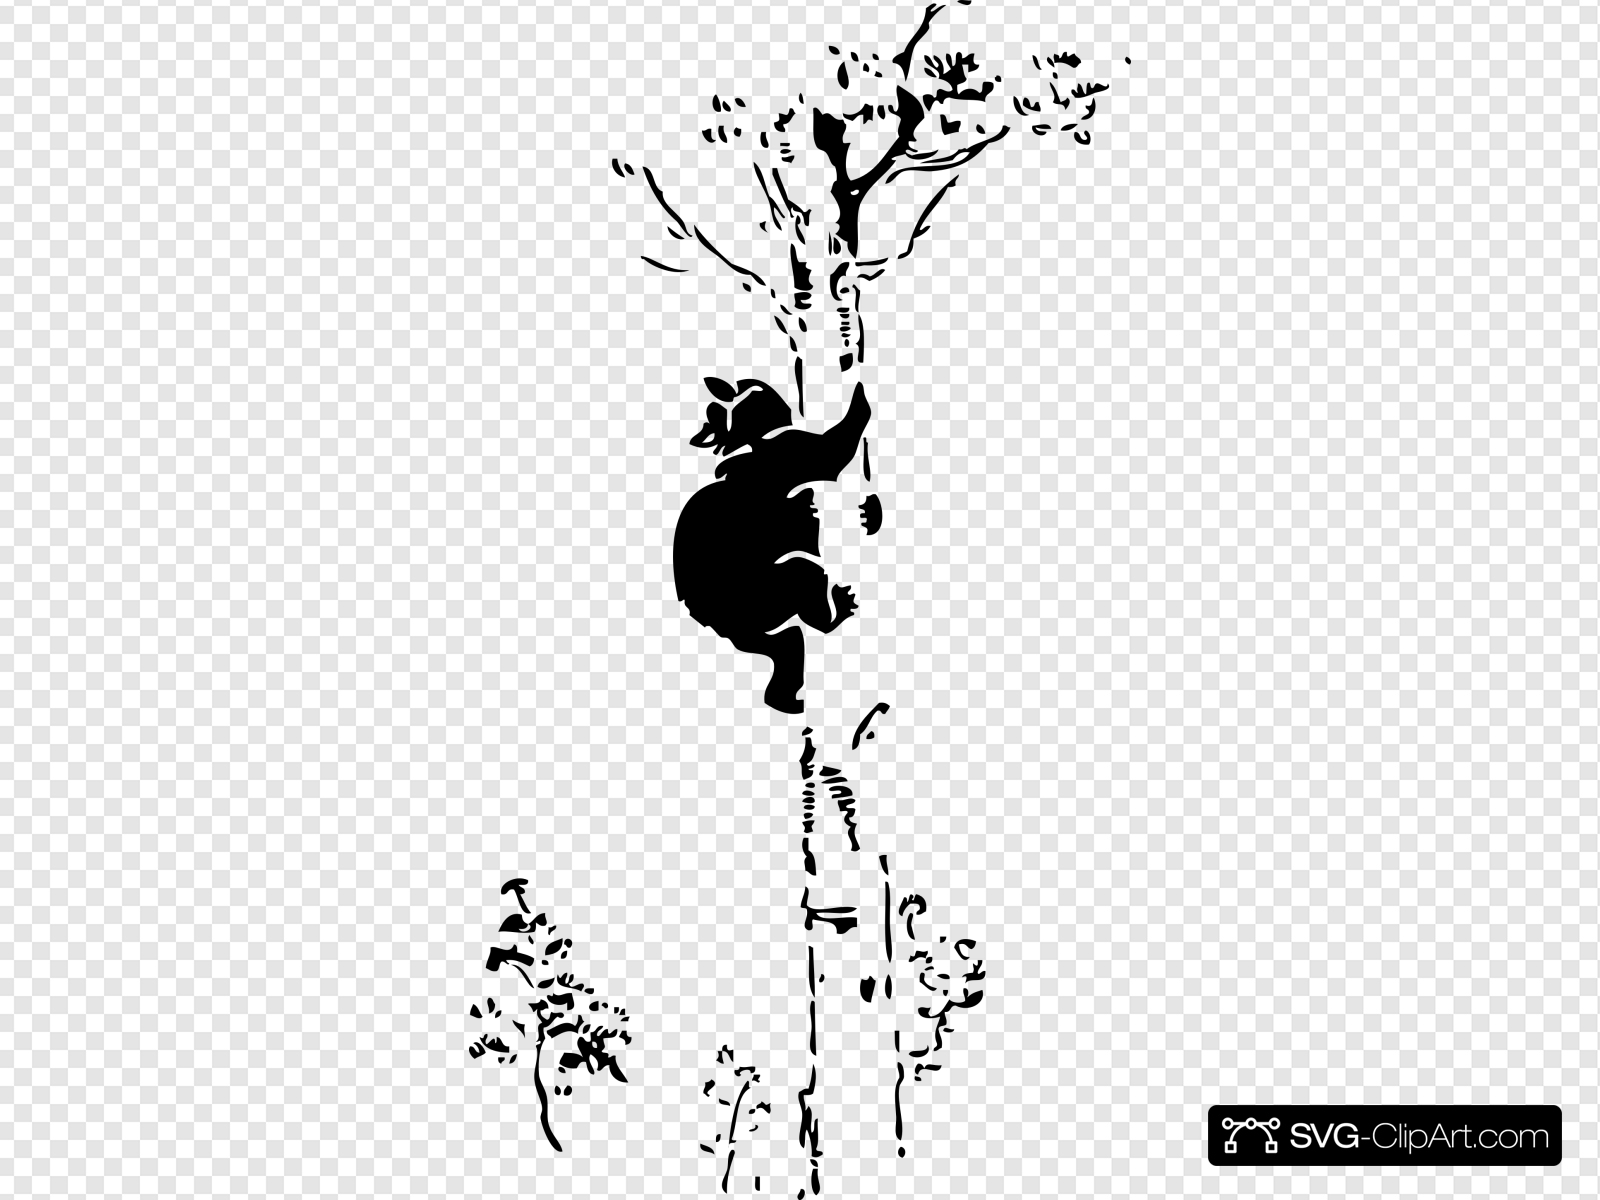 Bear Up A Tree Clip art, Icon and SVG.